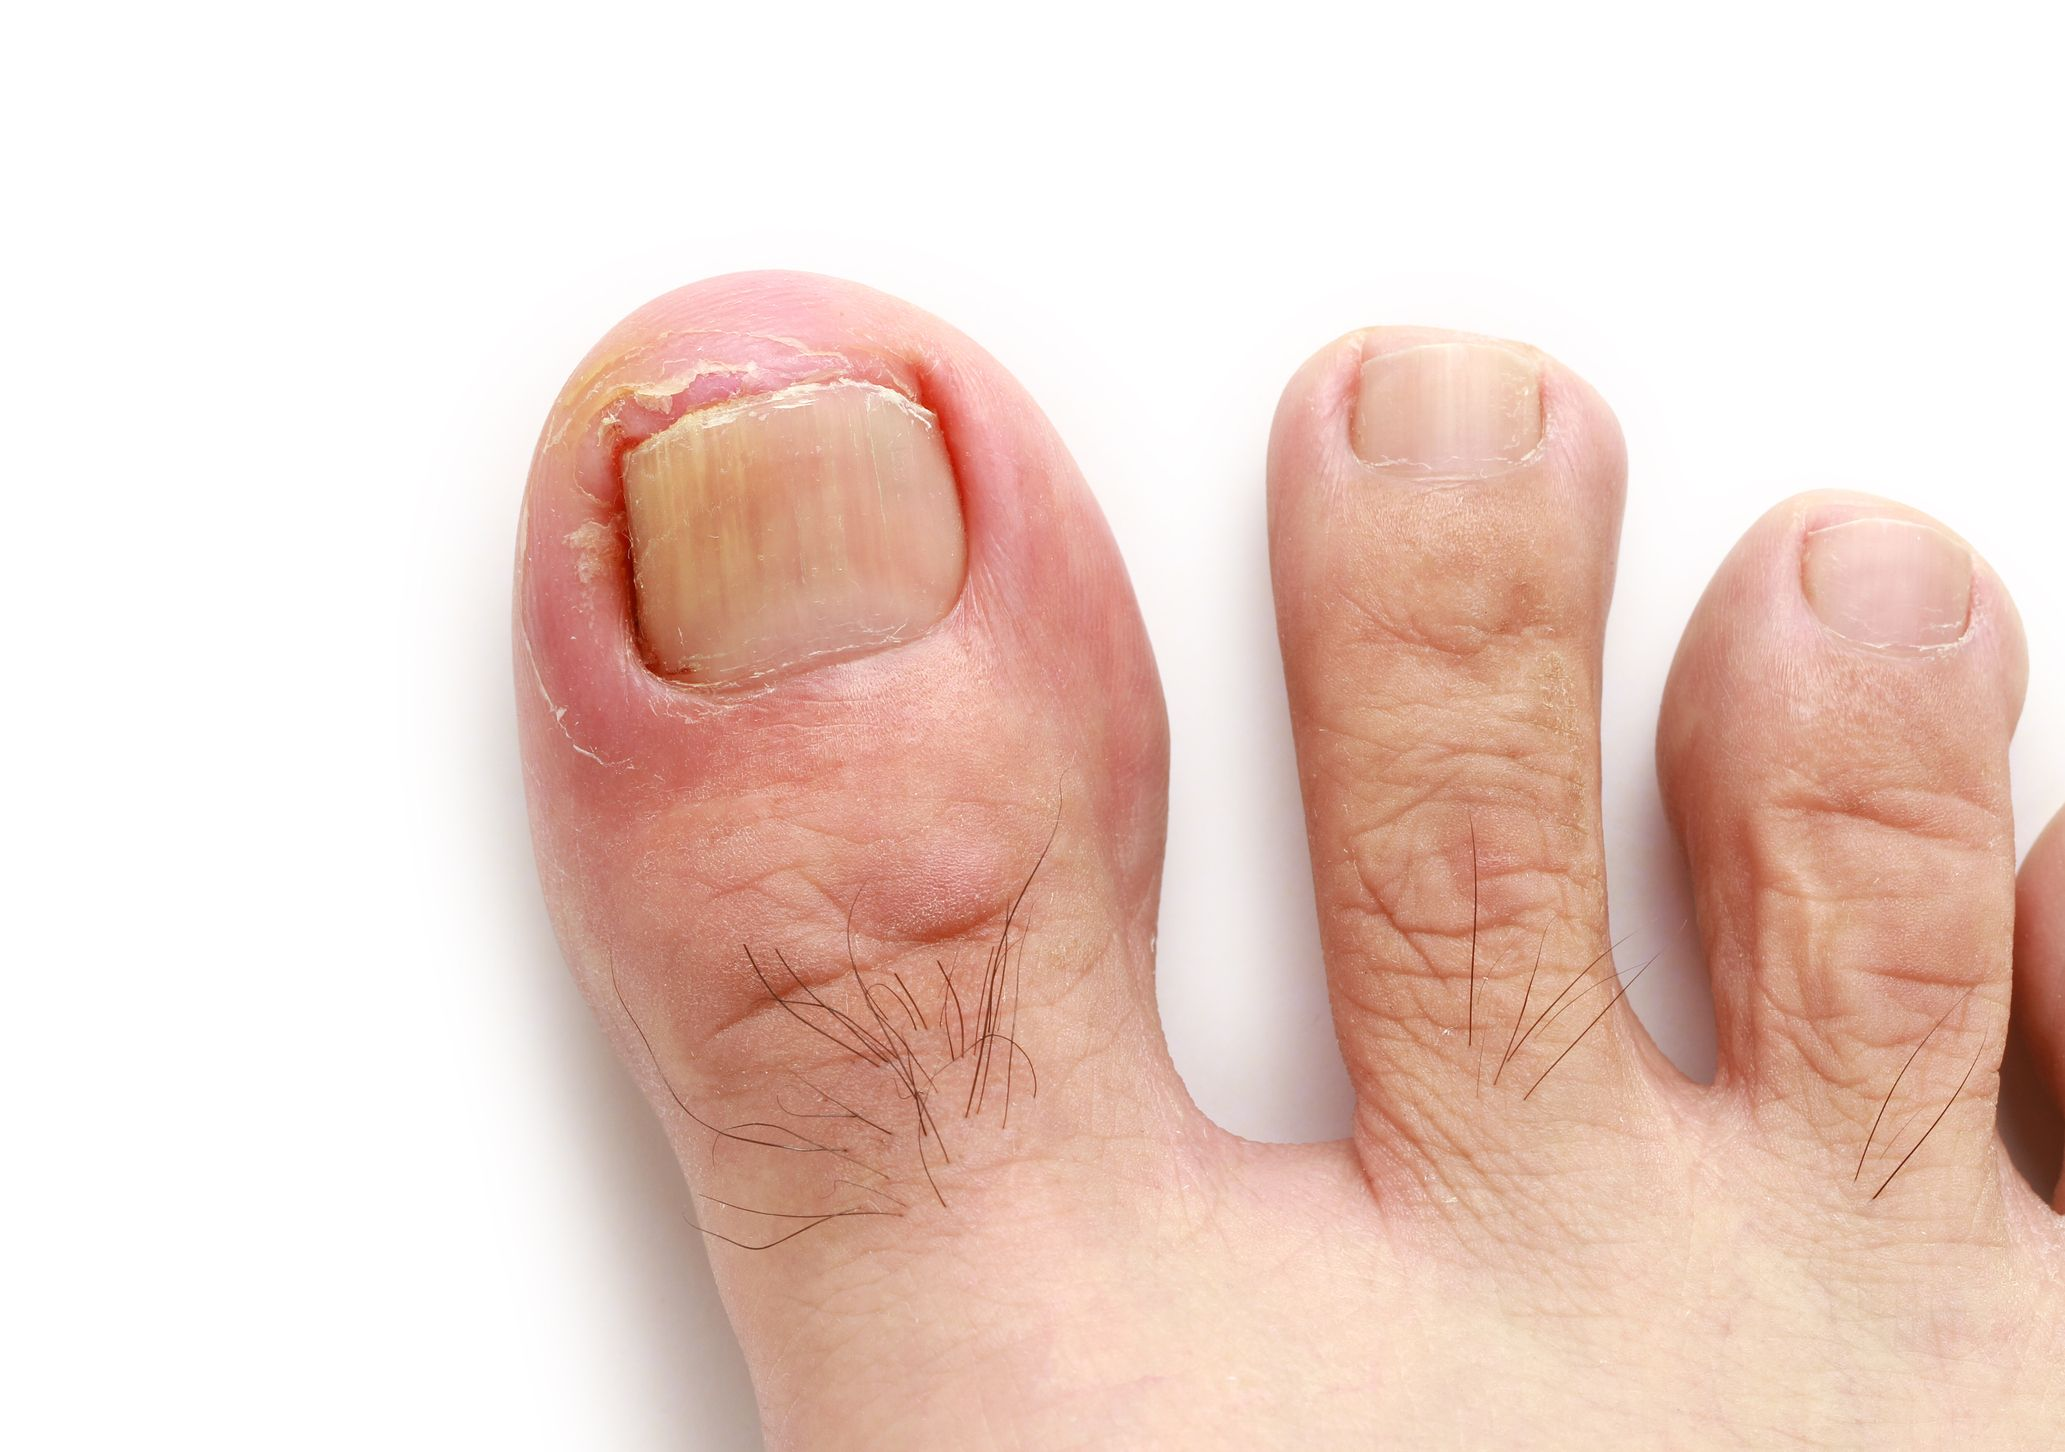 How To Get Rid Of An Ingrown Toenail How To Fix Ingrown